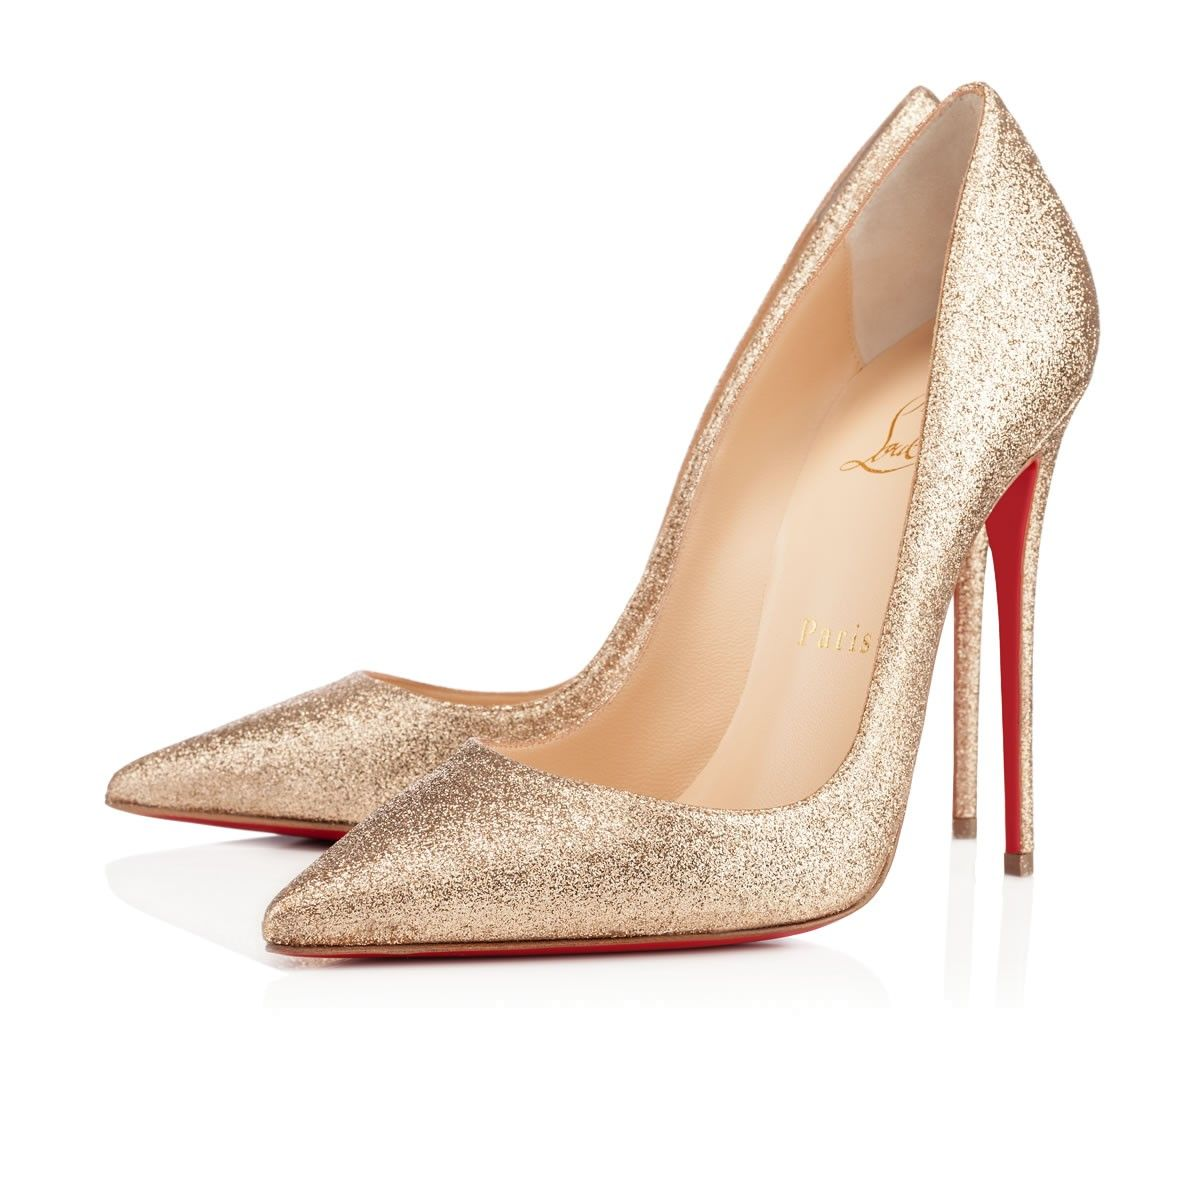 4015cad0fb13 Louboutin So Kate